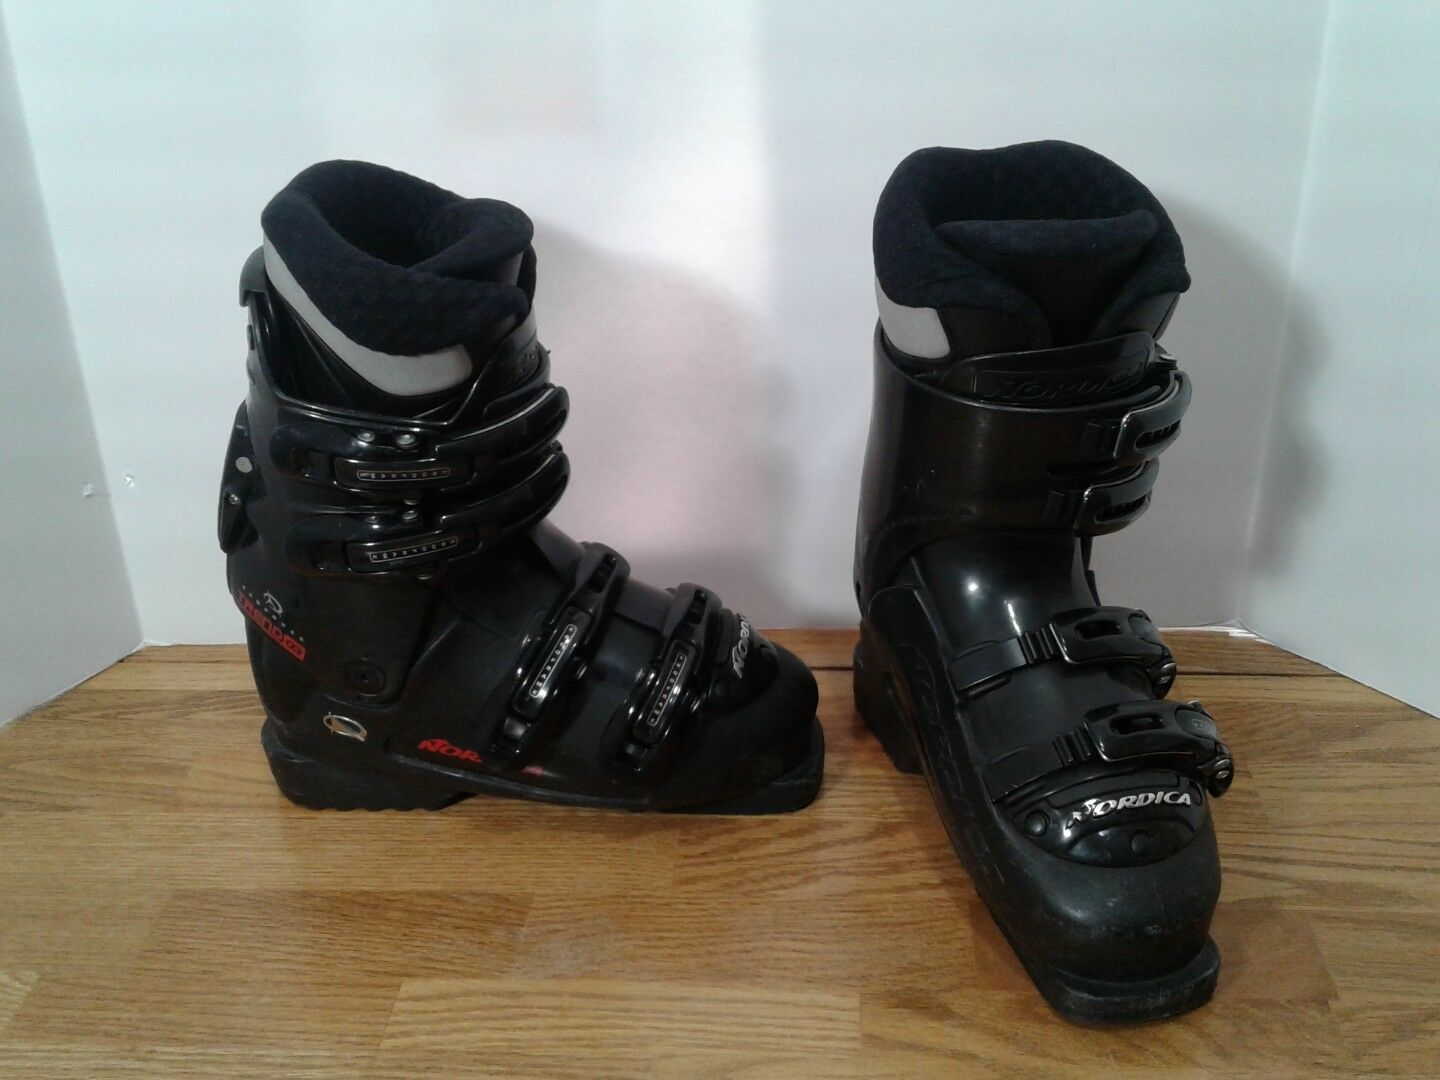 Nordica Downhill Ski Boots Exopower Trend 03 270 mm 23.5 6  6.5 225 235 Womens